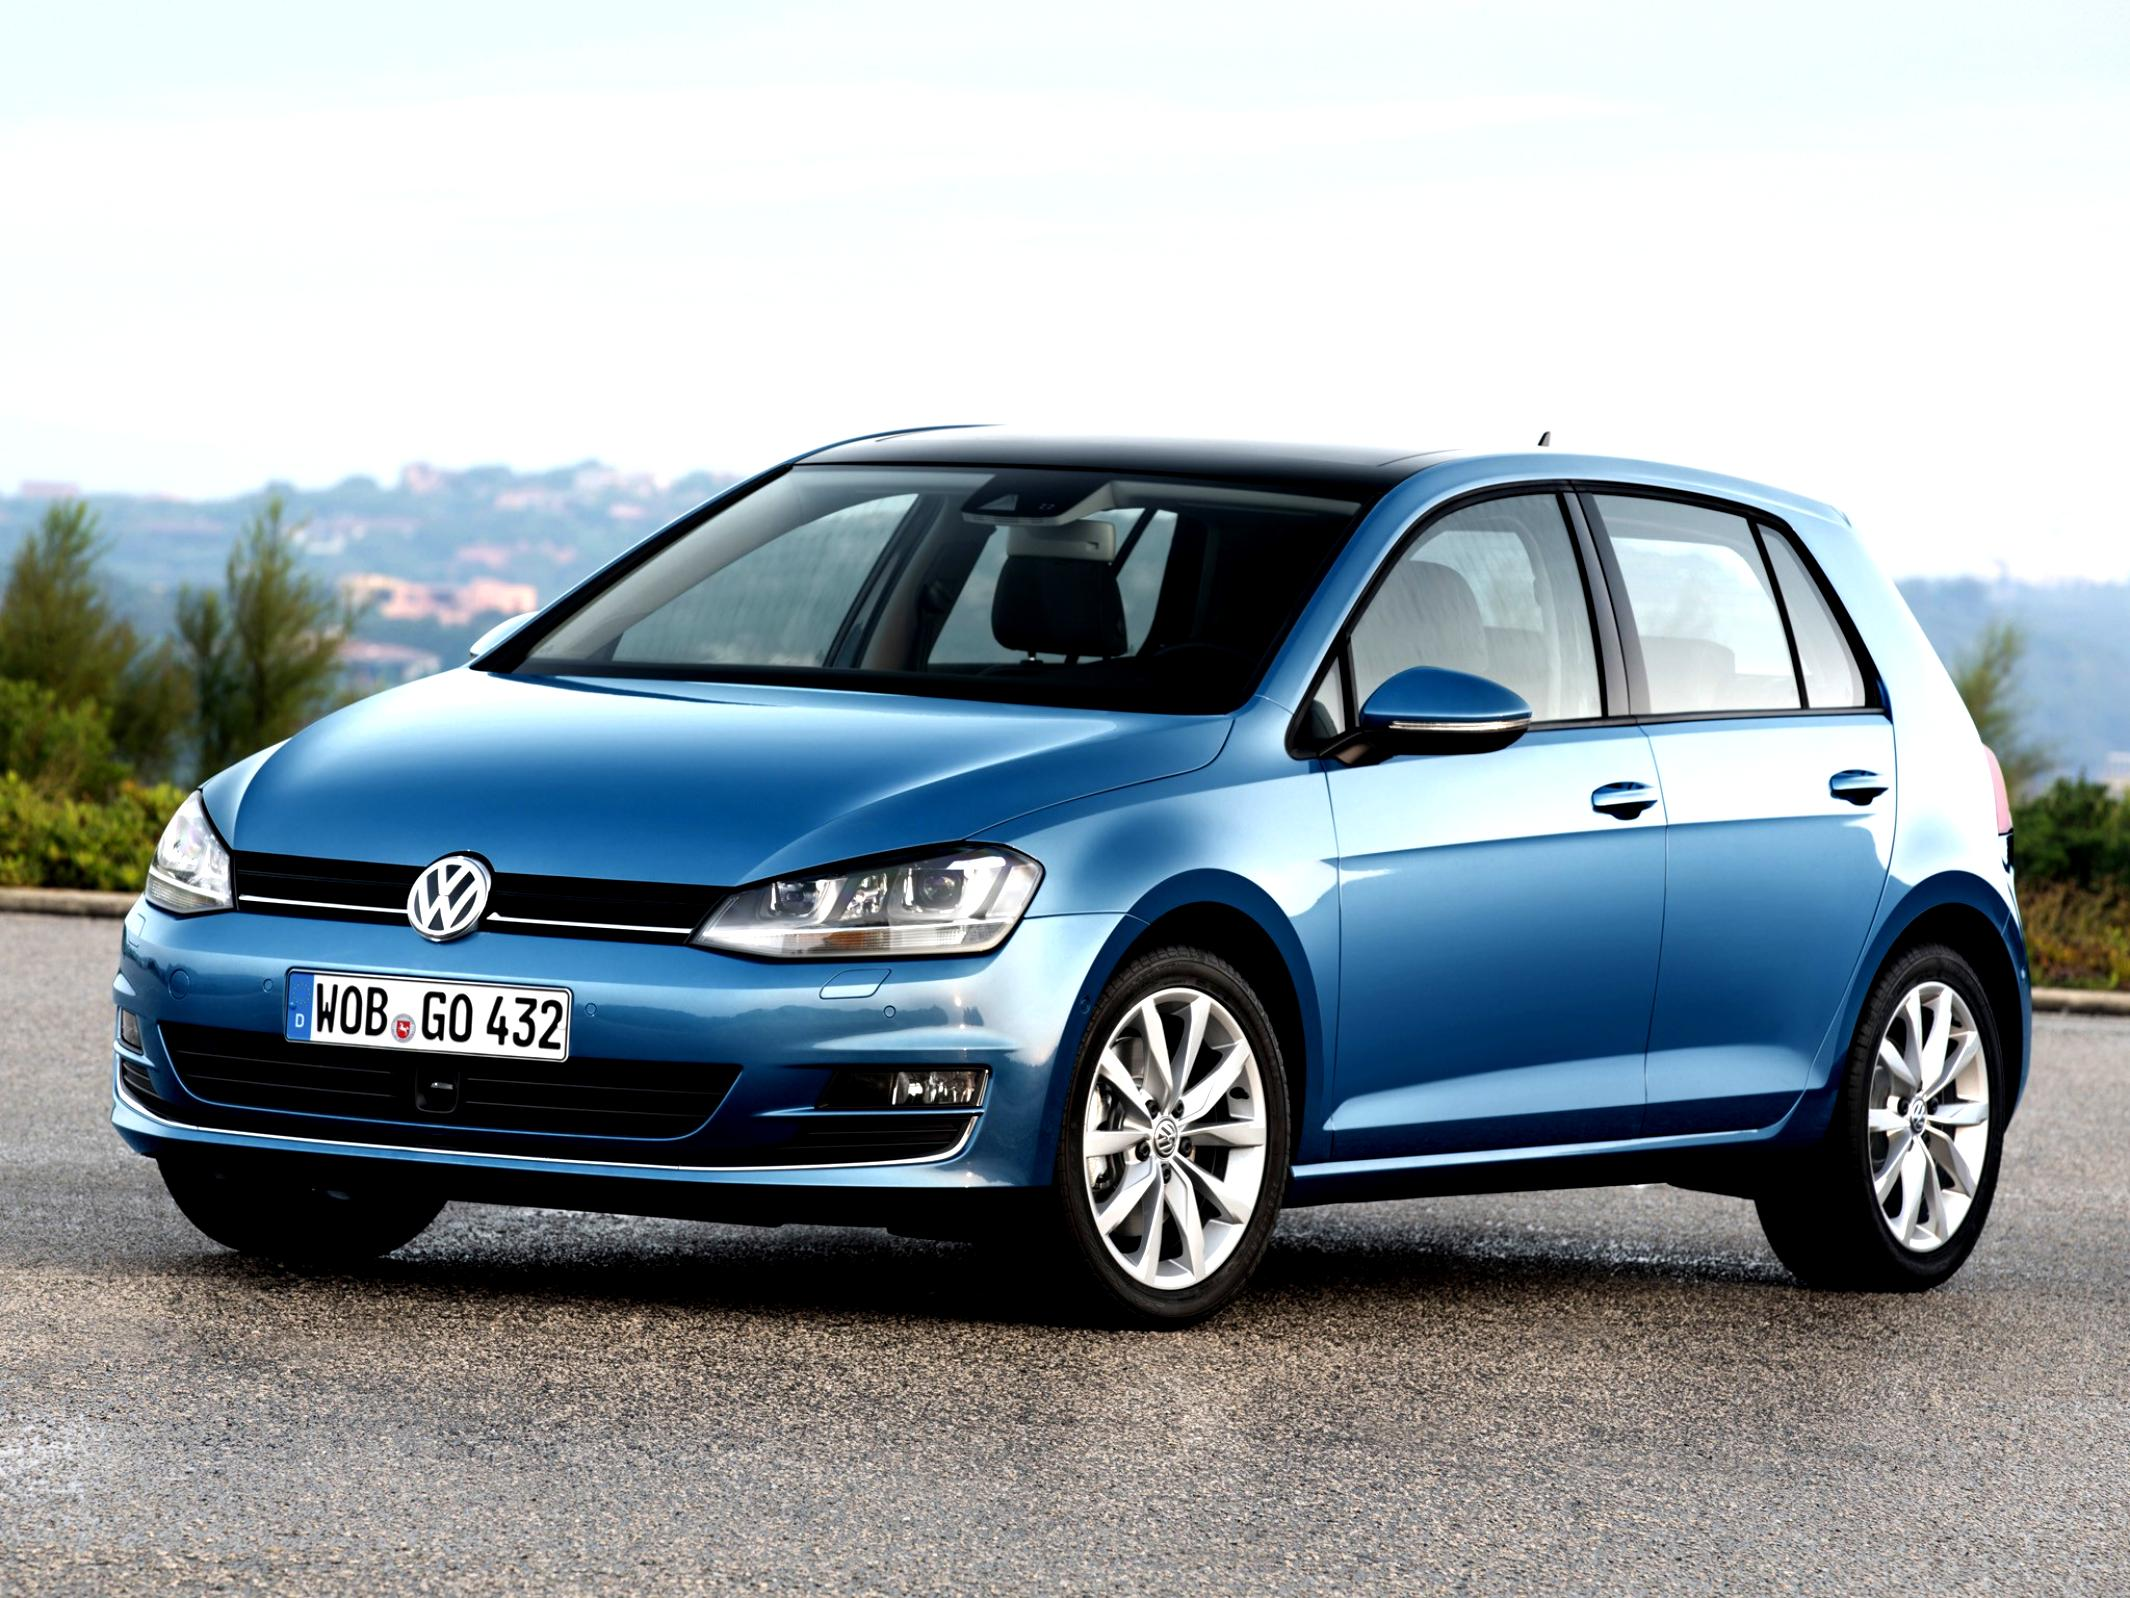 Volkswagen Golf VII 5 Doors 2012 #14